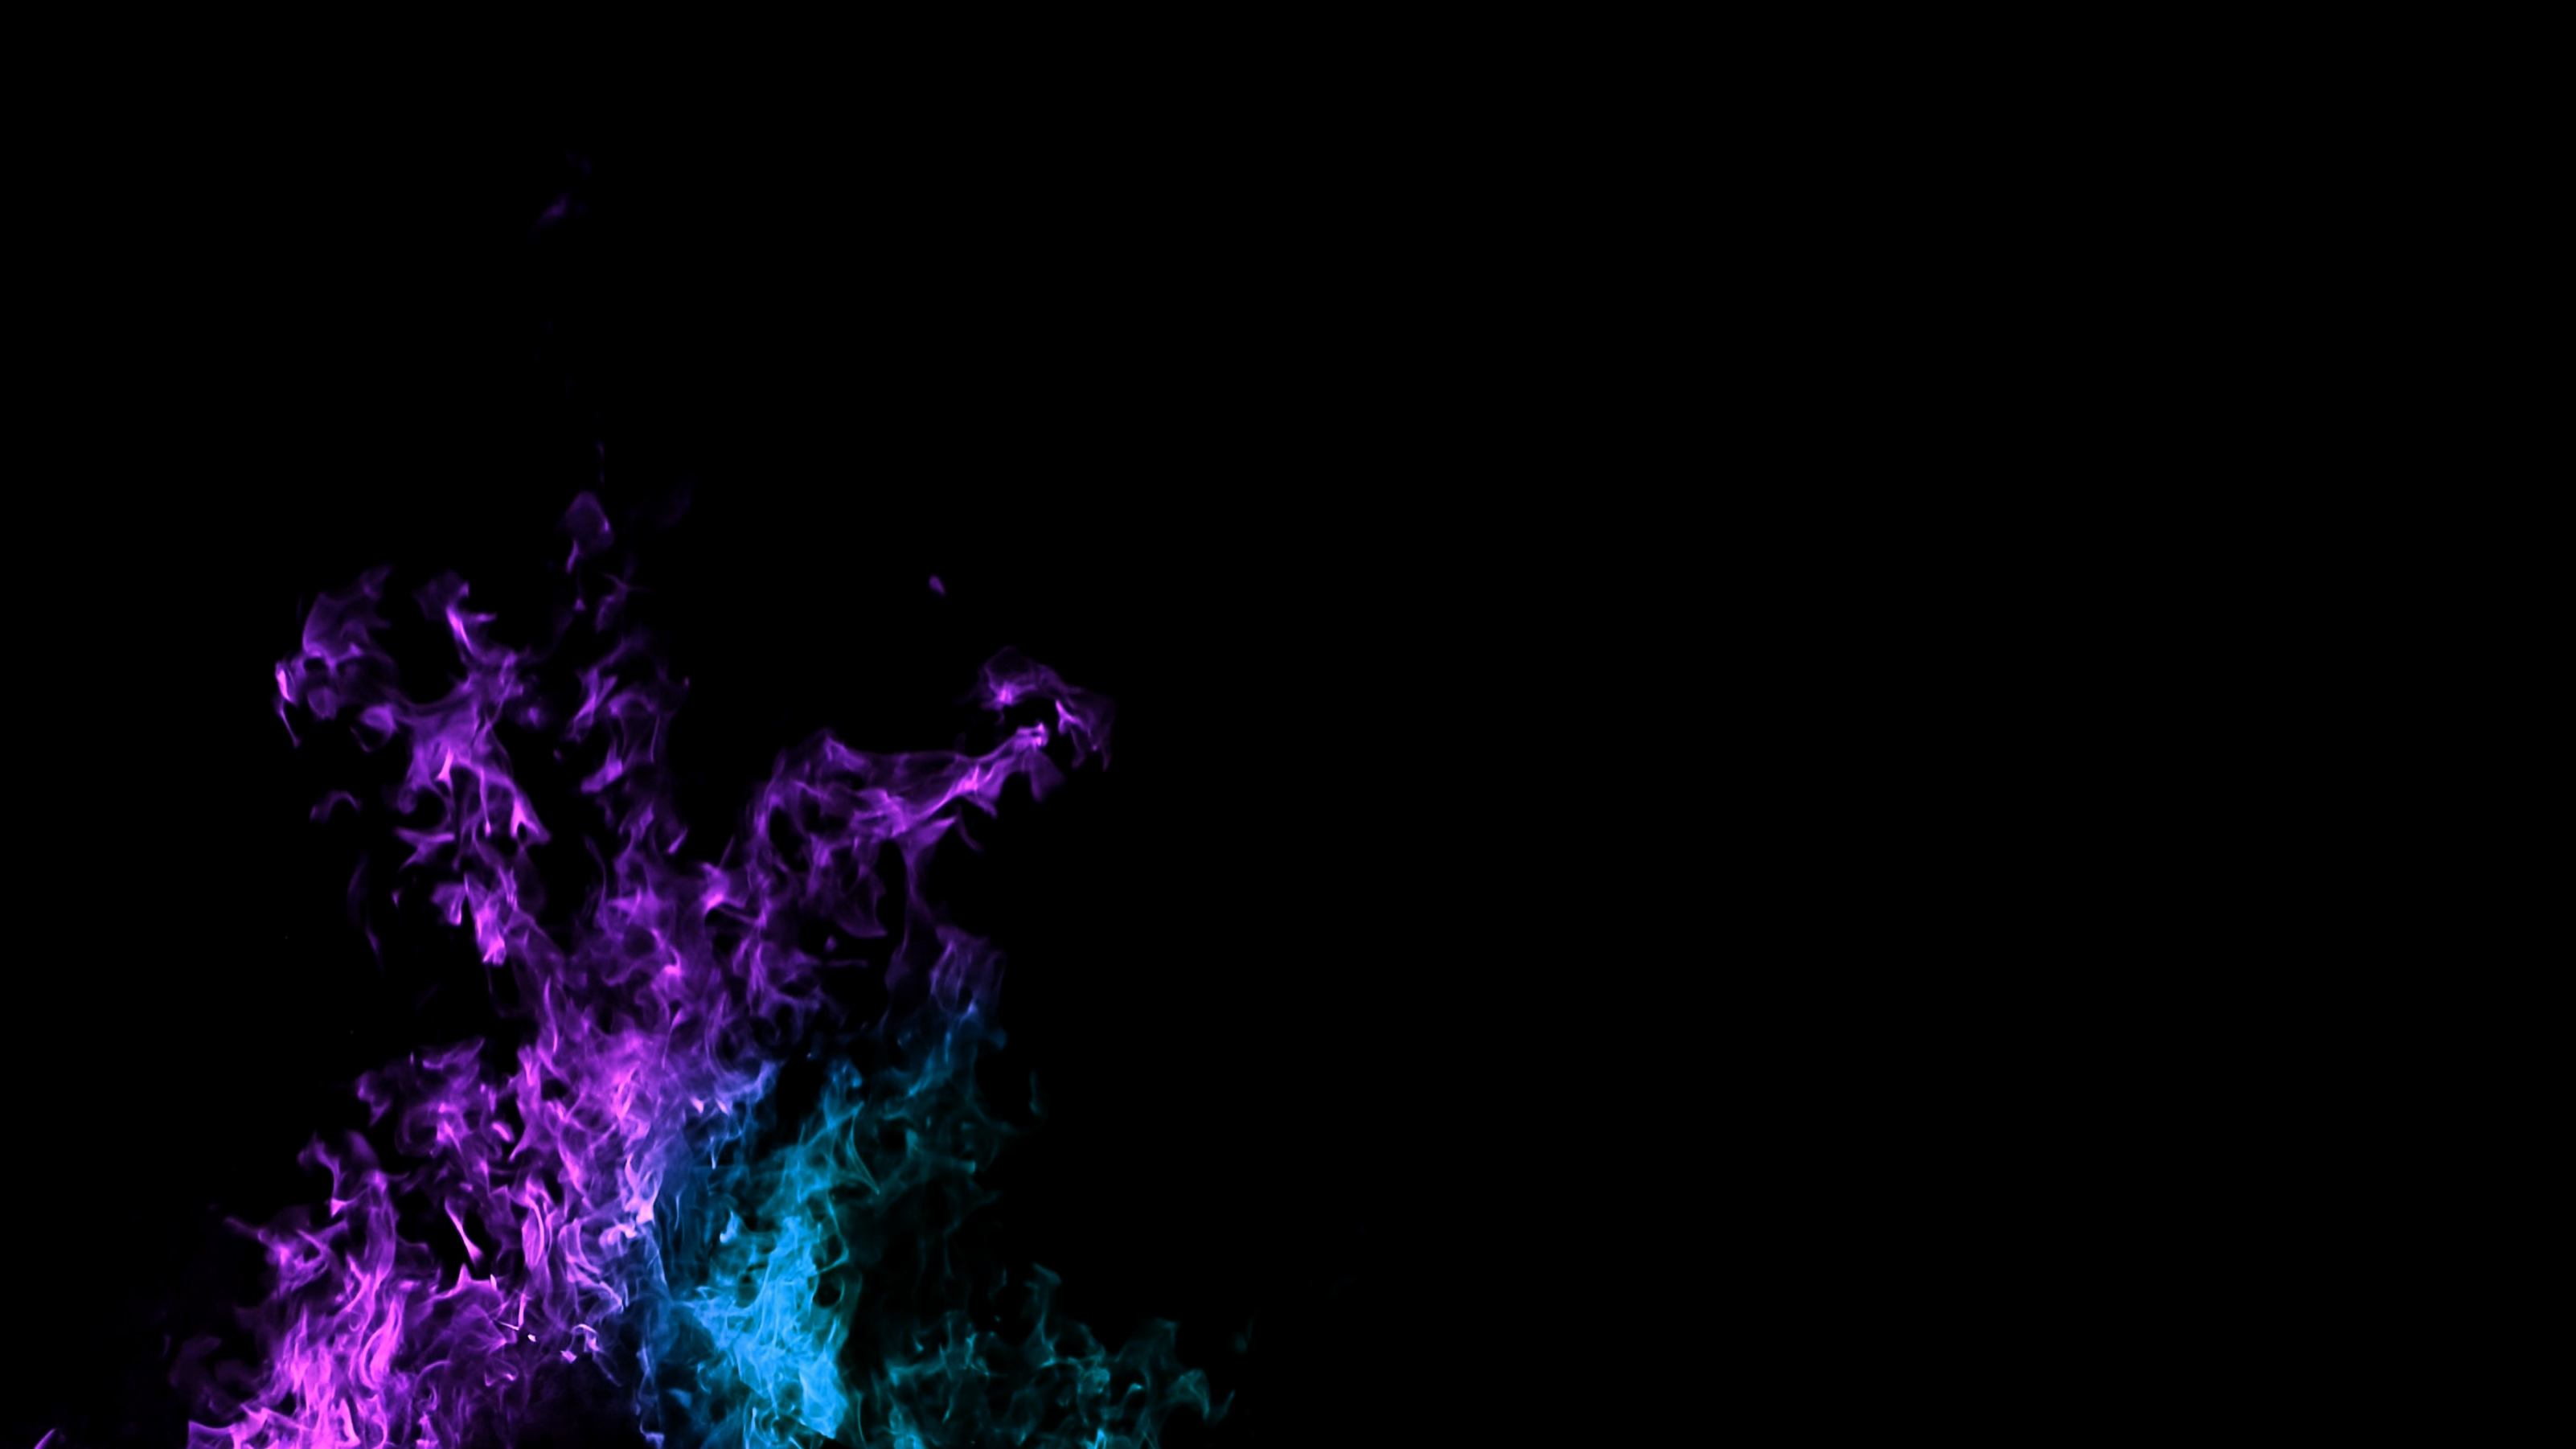 Purple Falling Circles Wallpaper Black Background Pictures Hq Download Free Images On